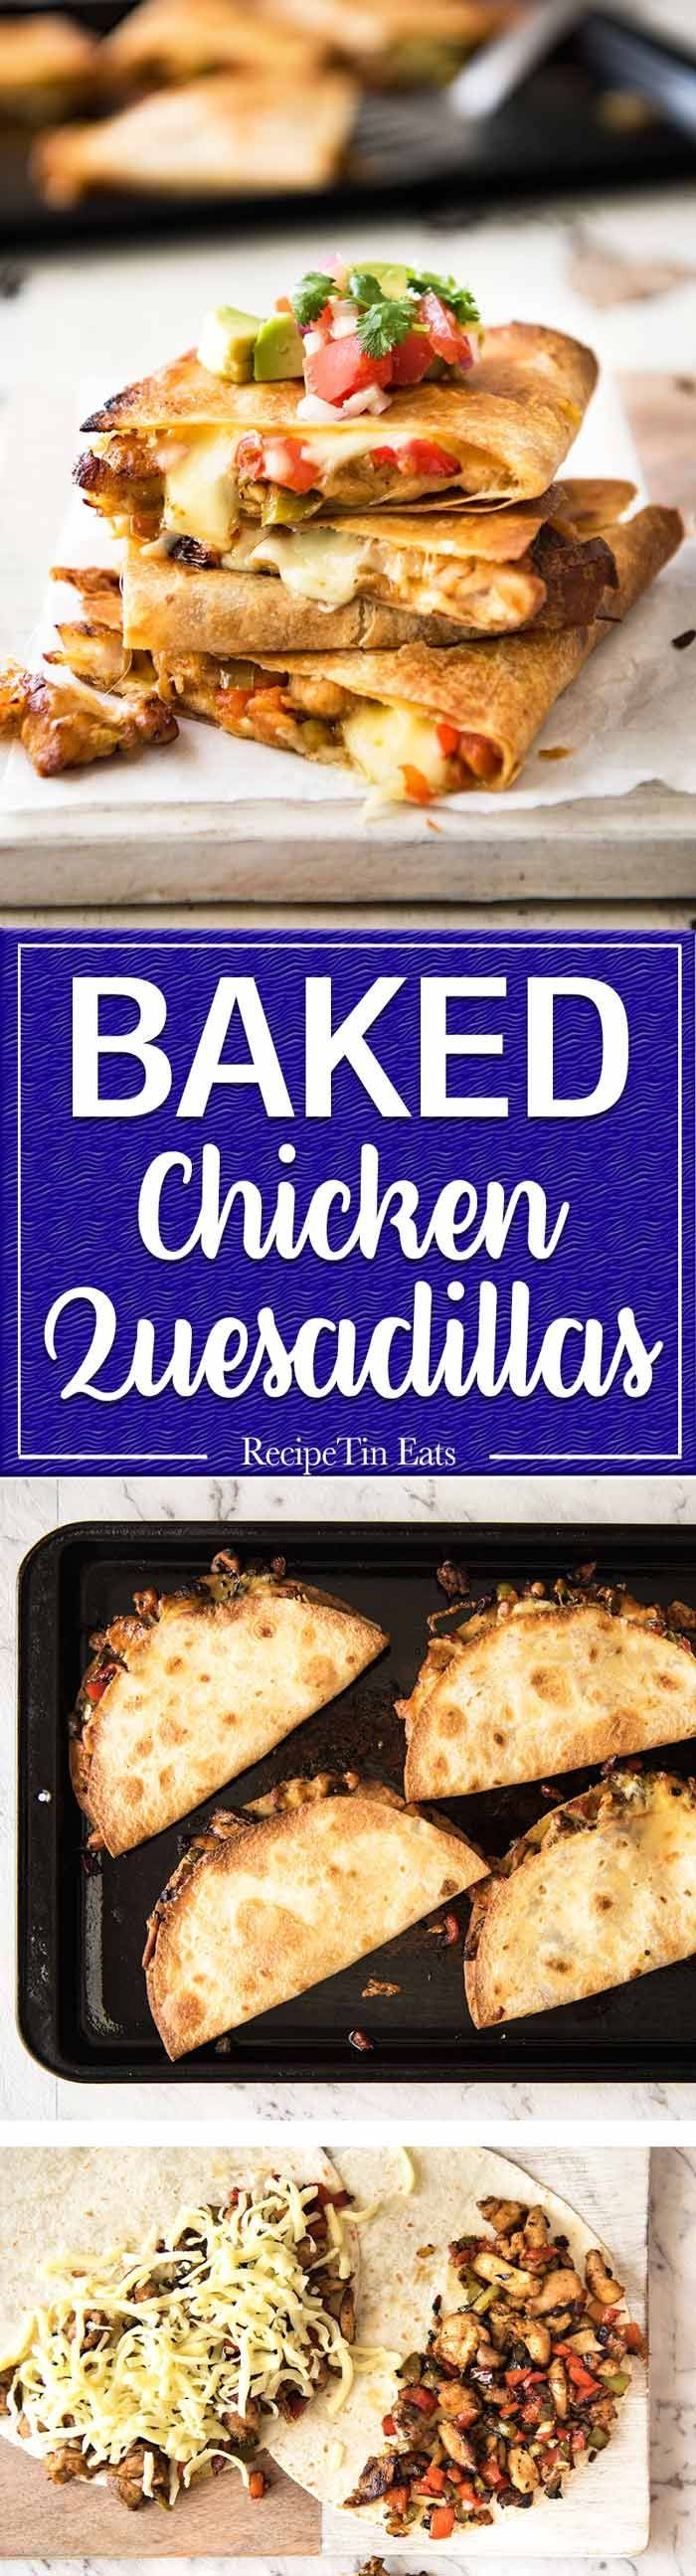 Crispy Oven Baked Chicken Quesadillas - This is how to make multiple Quesadillas at the same time! Crispy on the outside, stuffed with Mexican seasoned chicken and capsicum / bell peppers (and cheese of course!) www.recipetineats.com #chickenfajitas